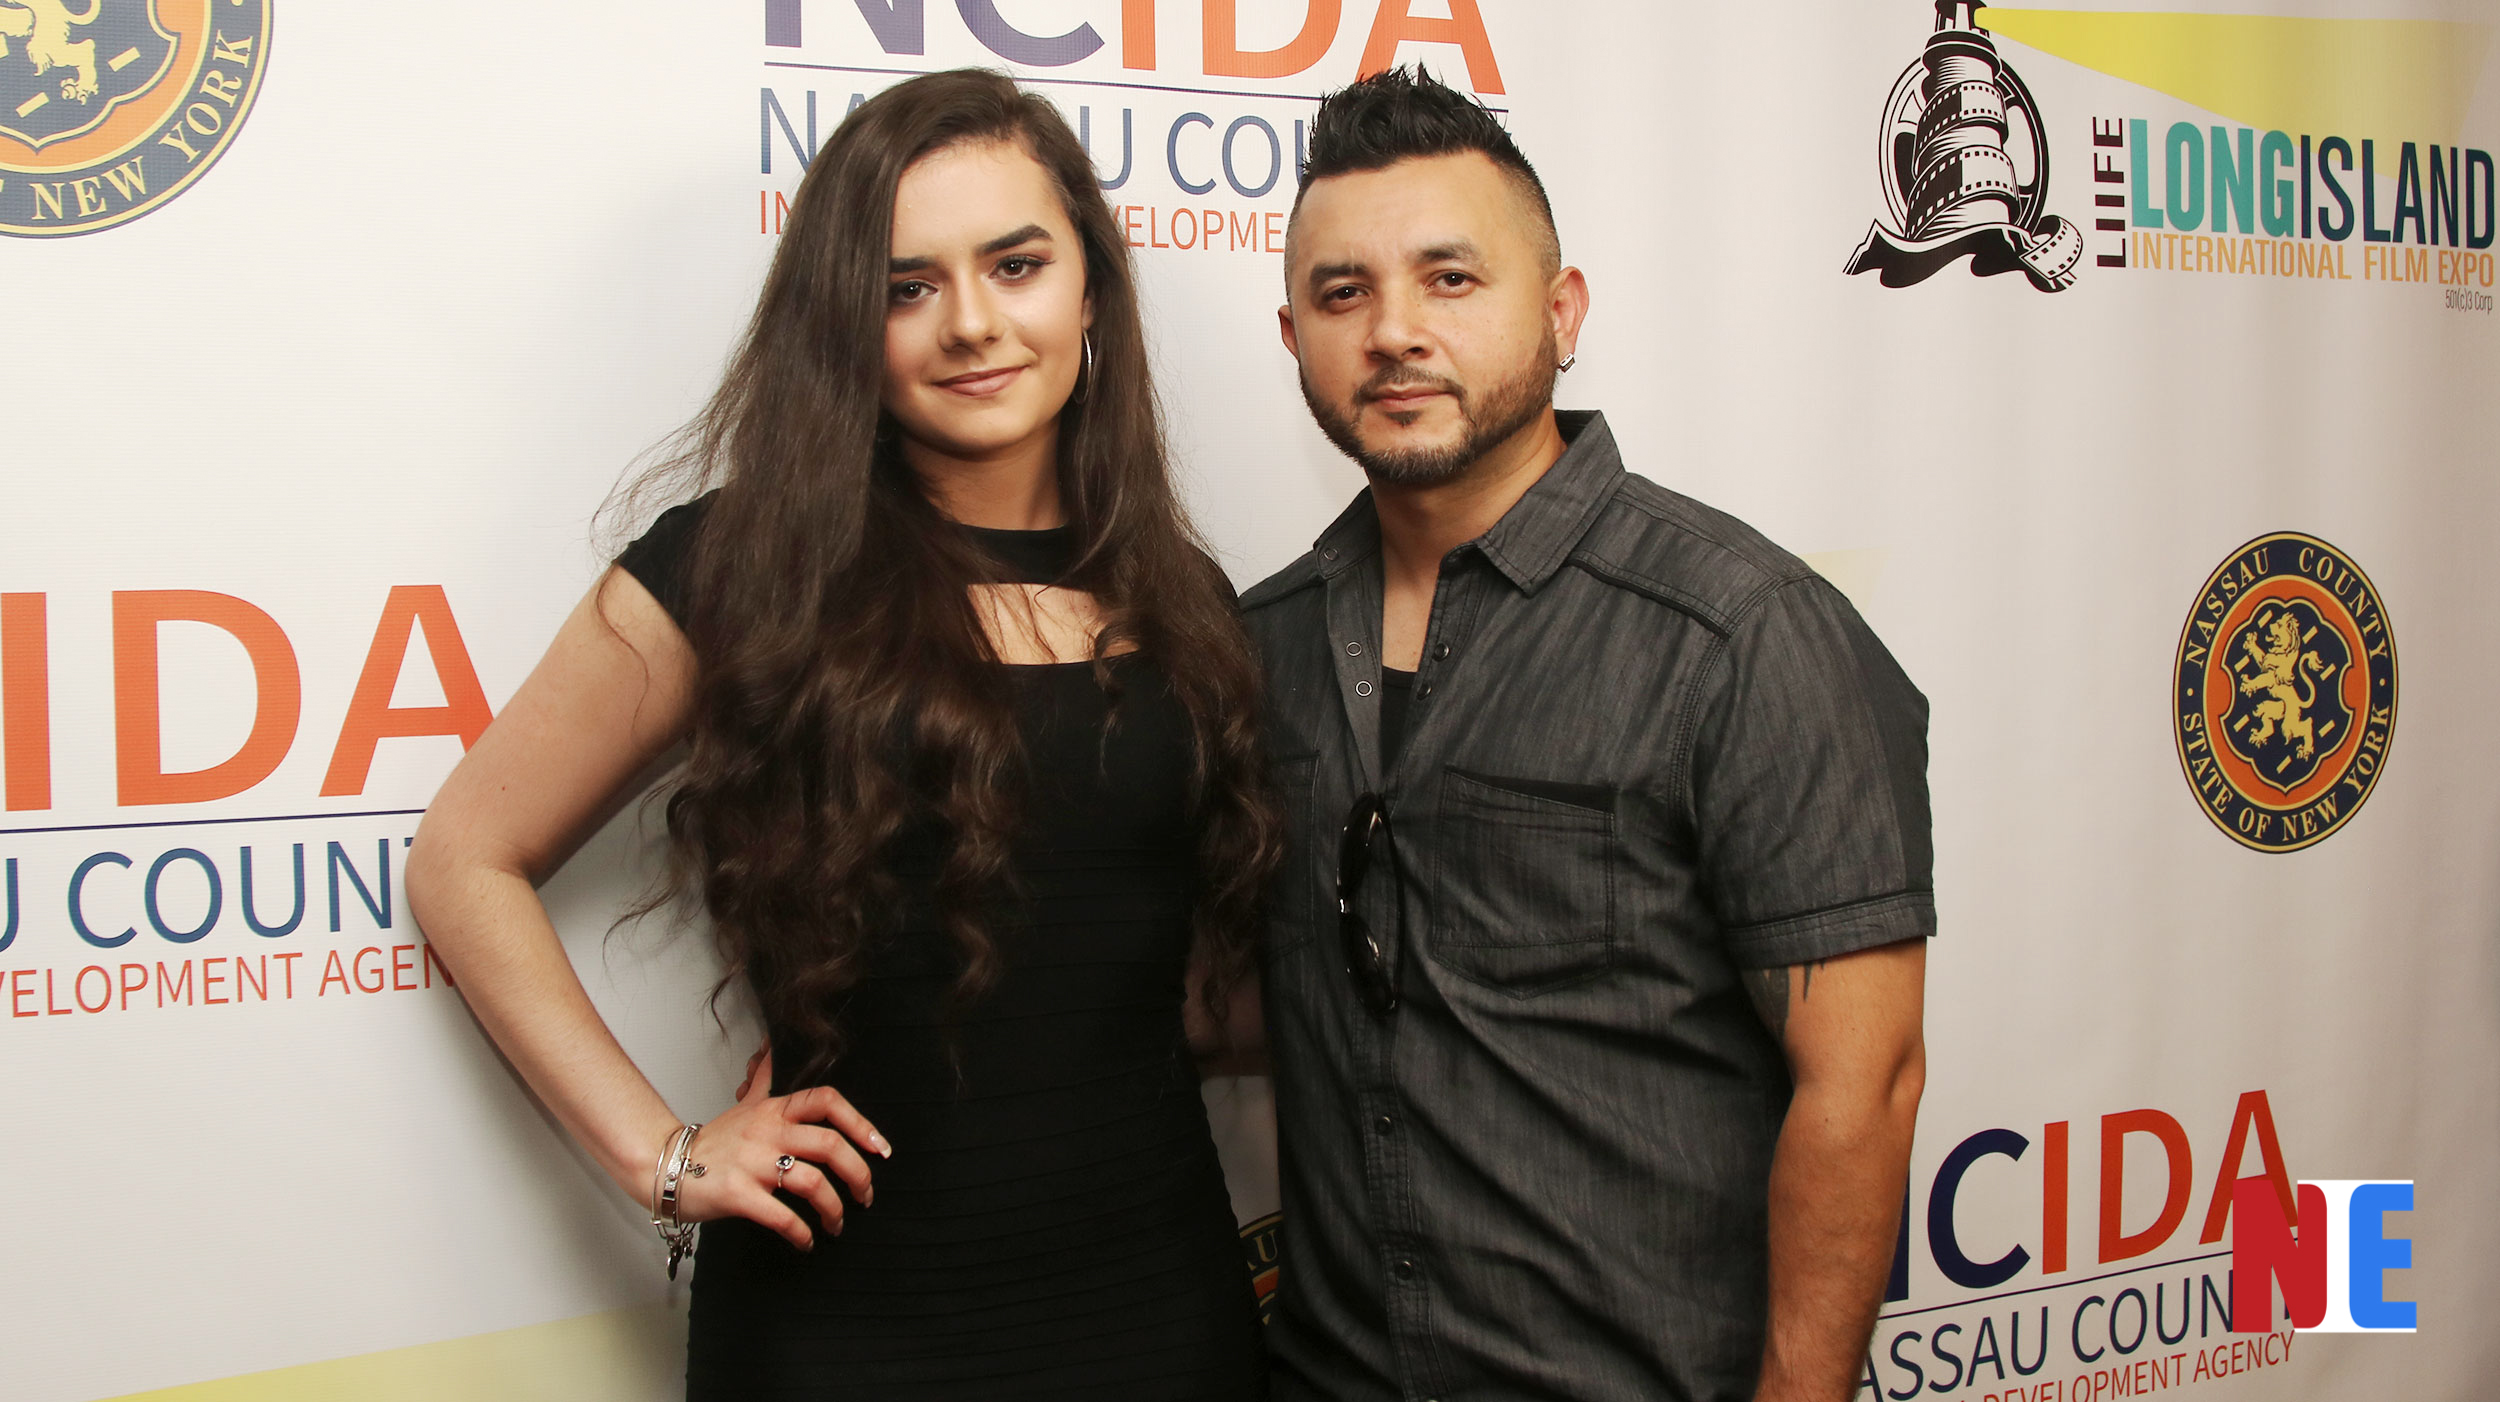 Sammi Rae and Los Vegas attend the red carpet award ceremony for the Long Island International Film Expo at the Bellmore Movies and Showplace in New York on July 18, 2019 |  Courtesy of NIE